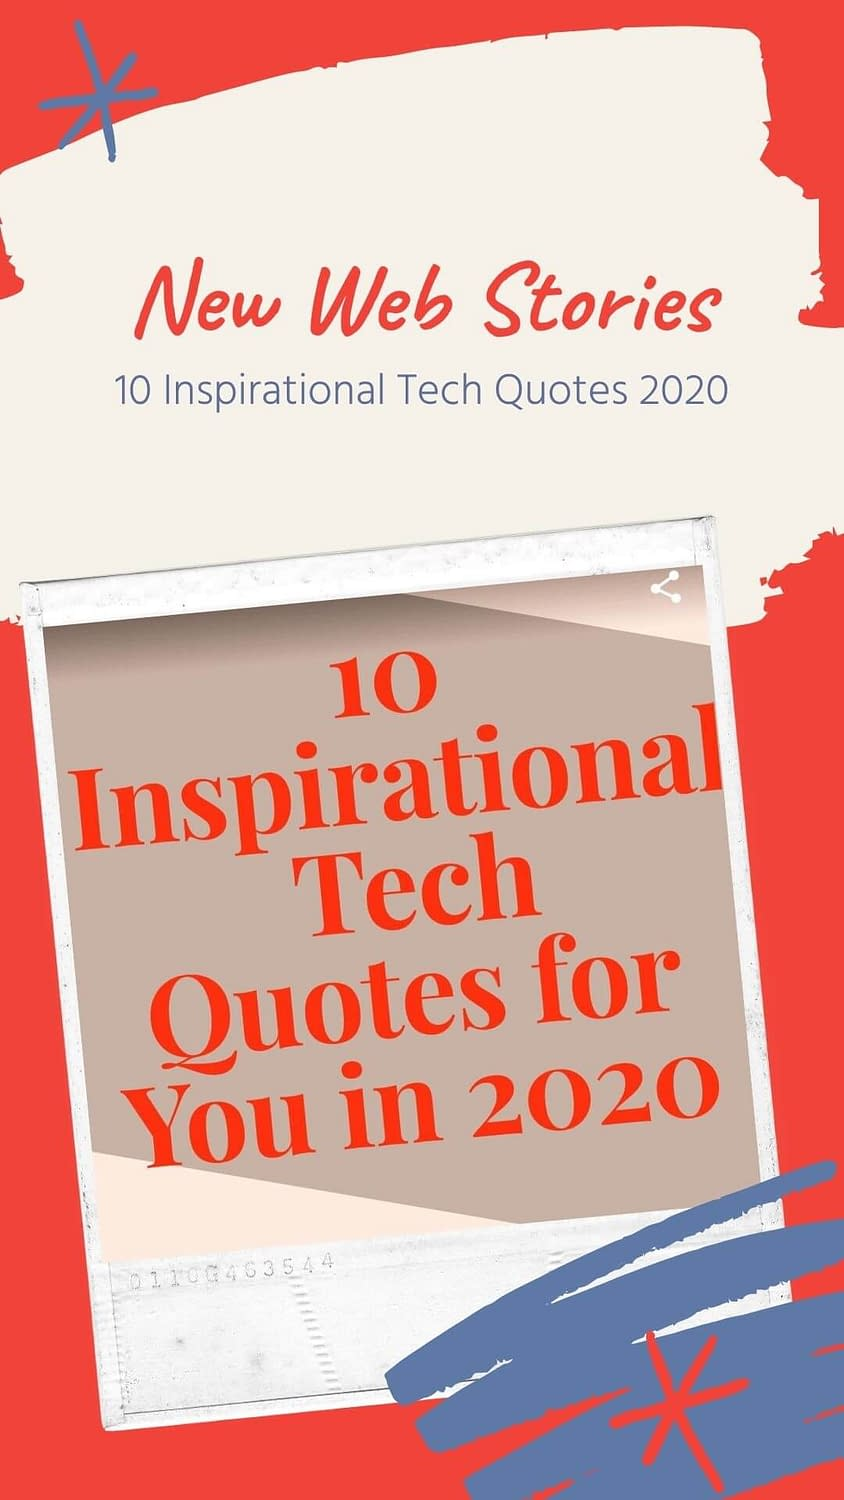 10 Inspirational Tech Quotes for you in 2020 - Web Stories